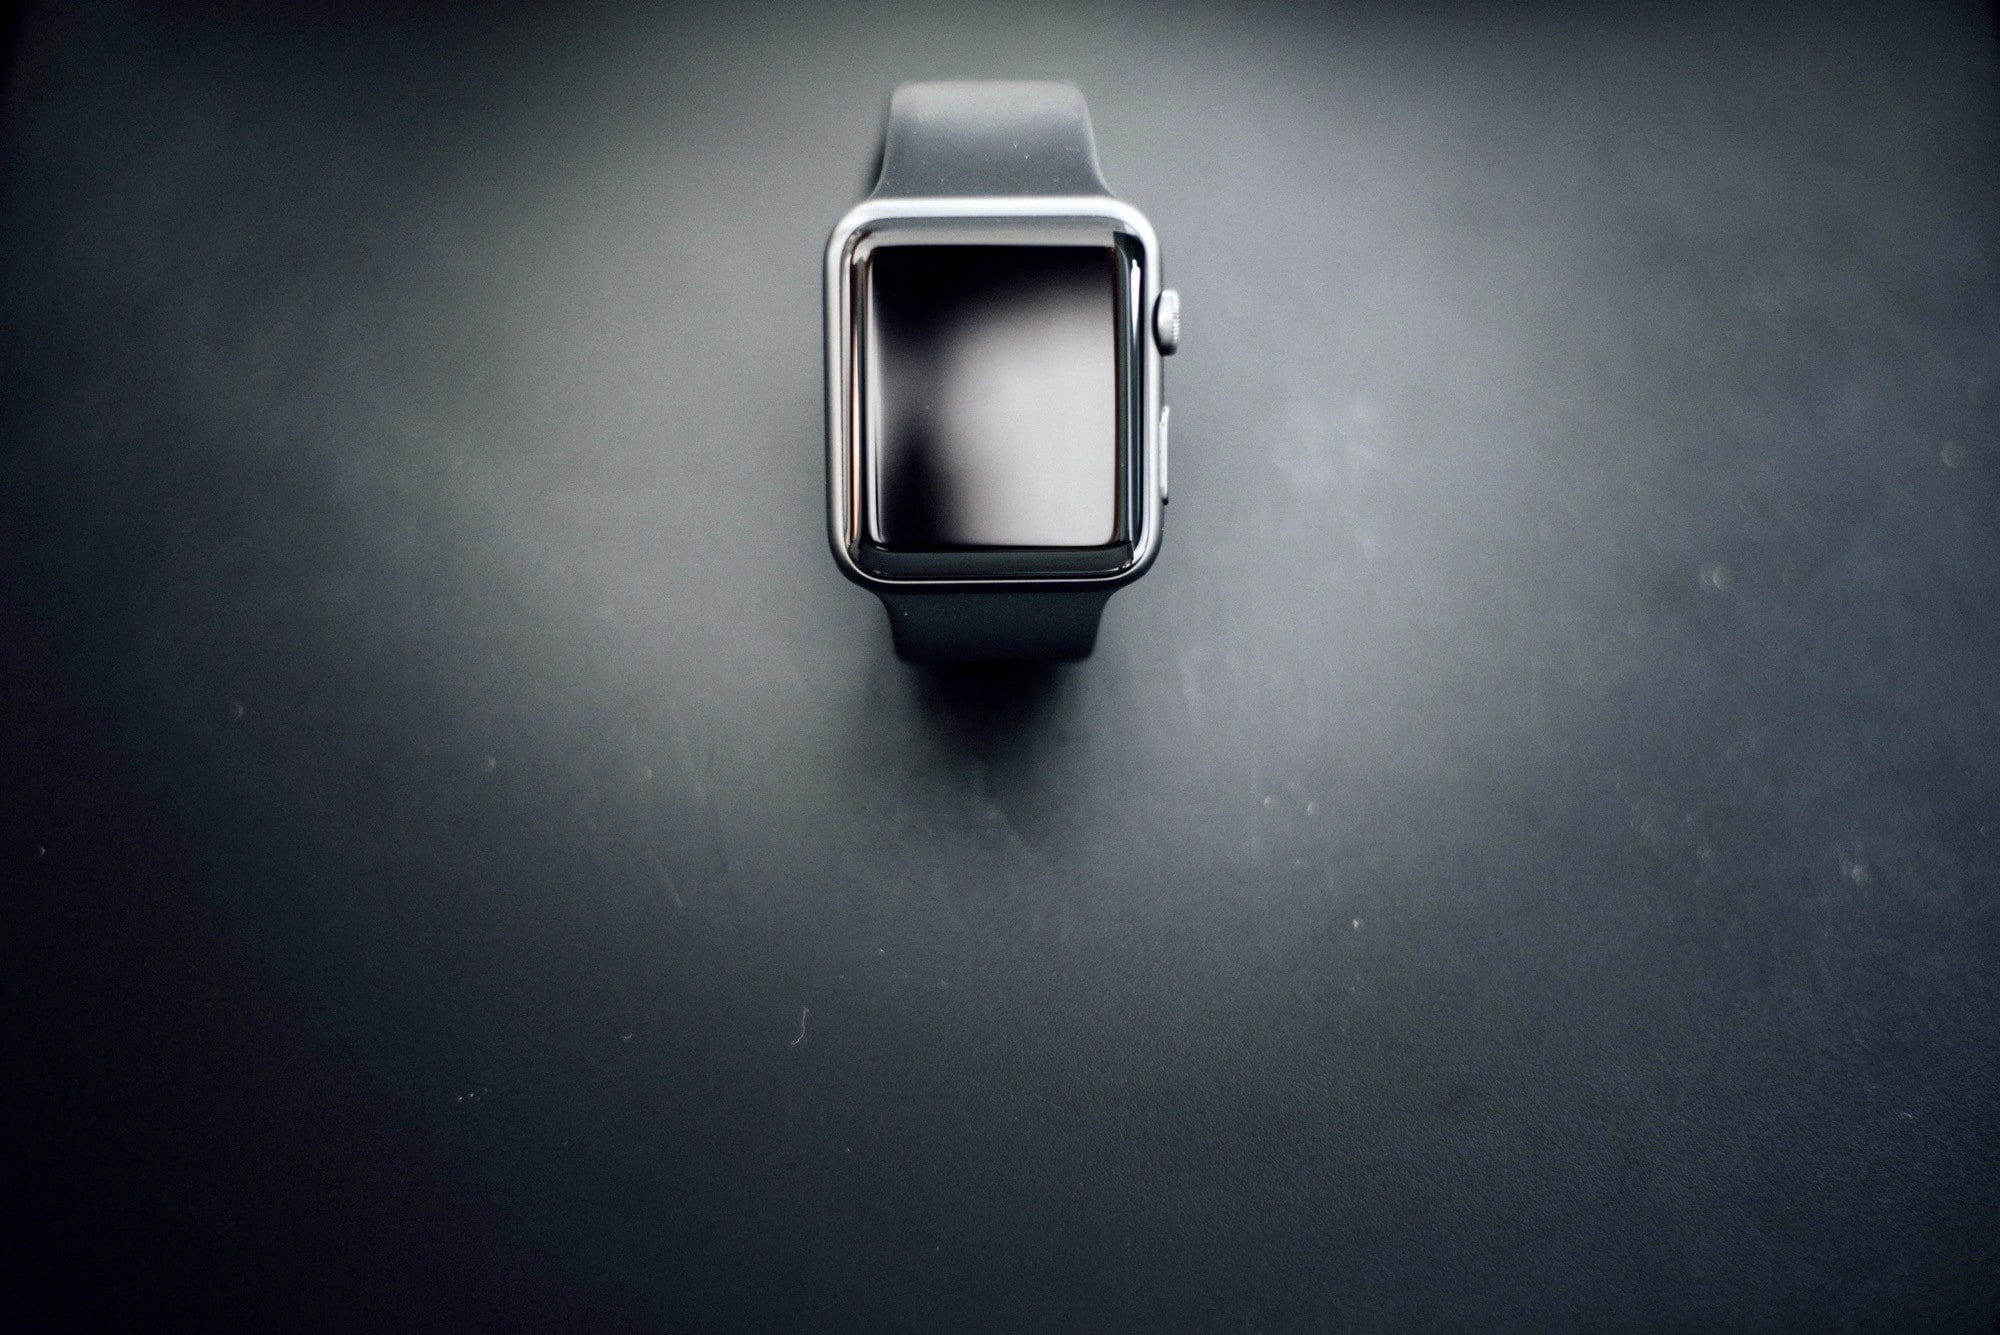 Keep your Apple Watch safe with a proper, long, strong passcode.